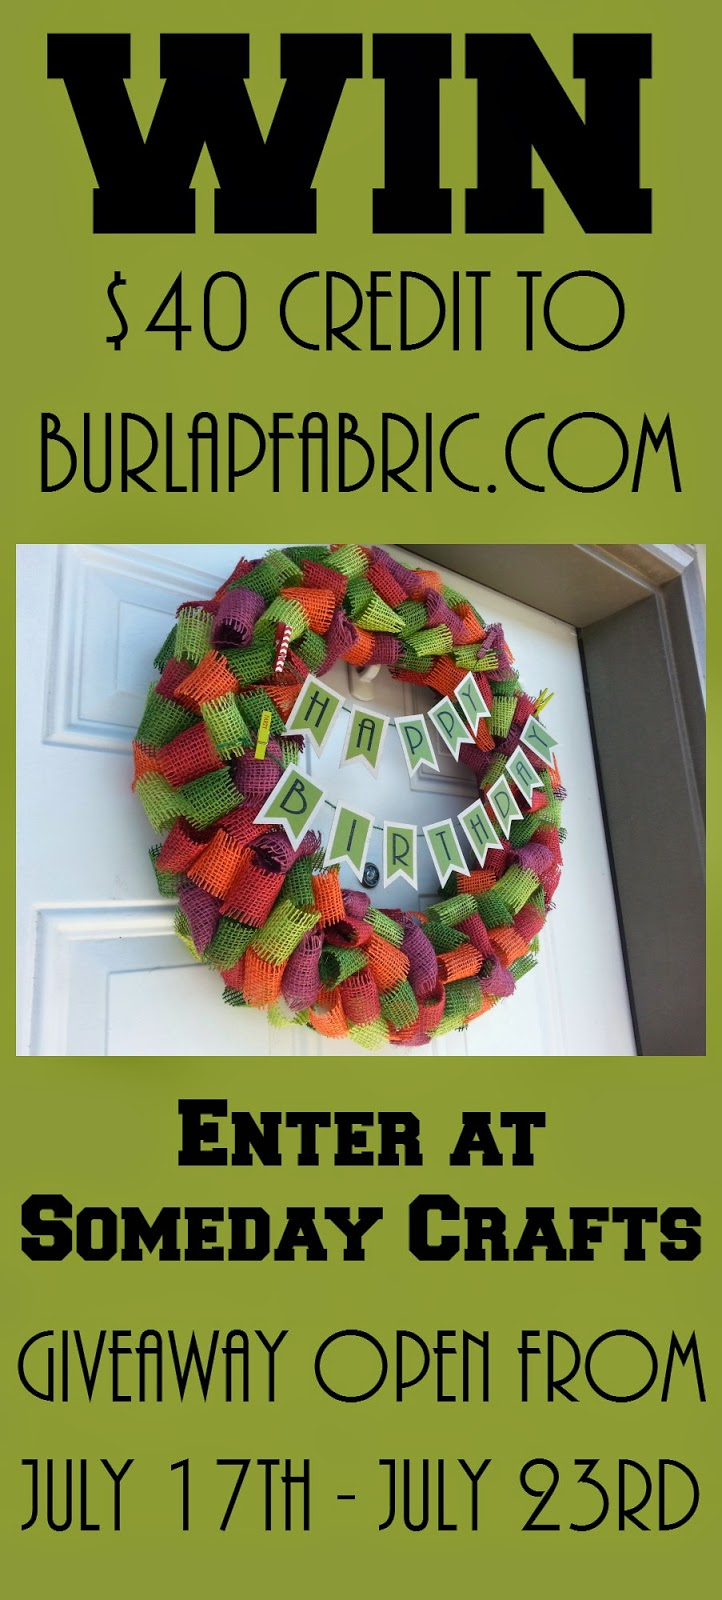 http://somedaycrafts.blogspot.com/2014/07/40-credit-giveaway-to-burlapfabriccom.html